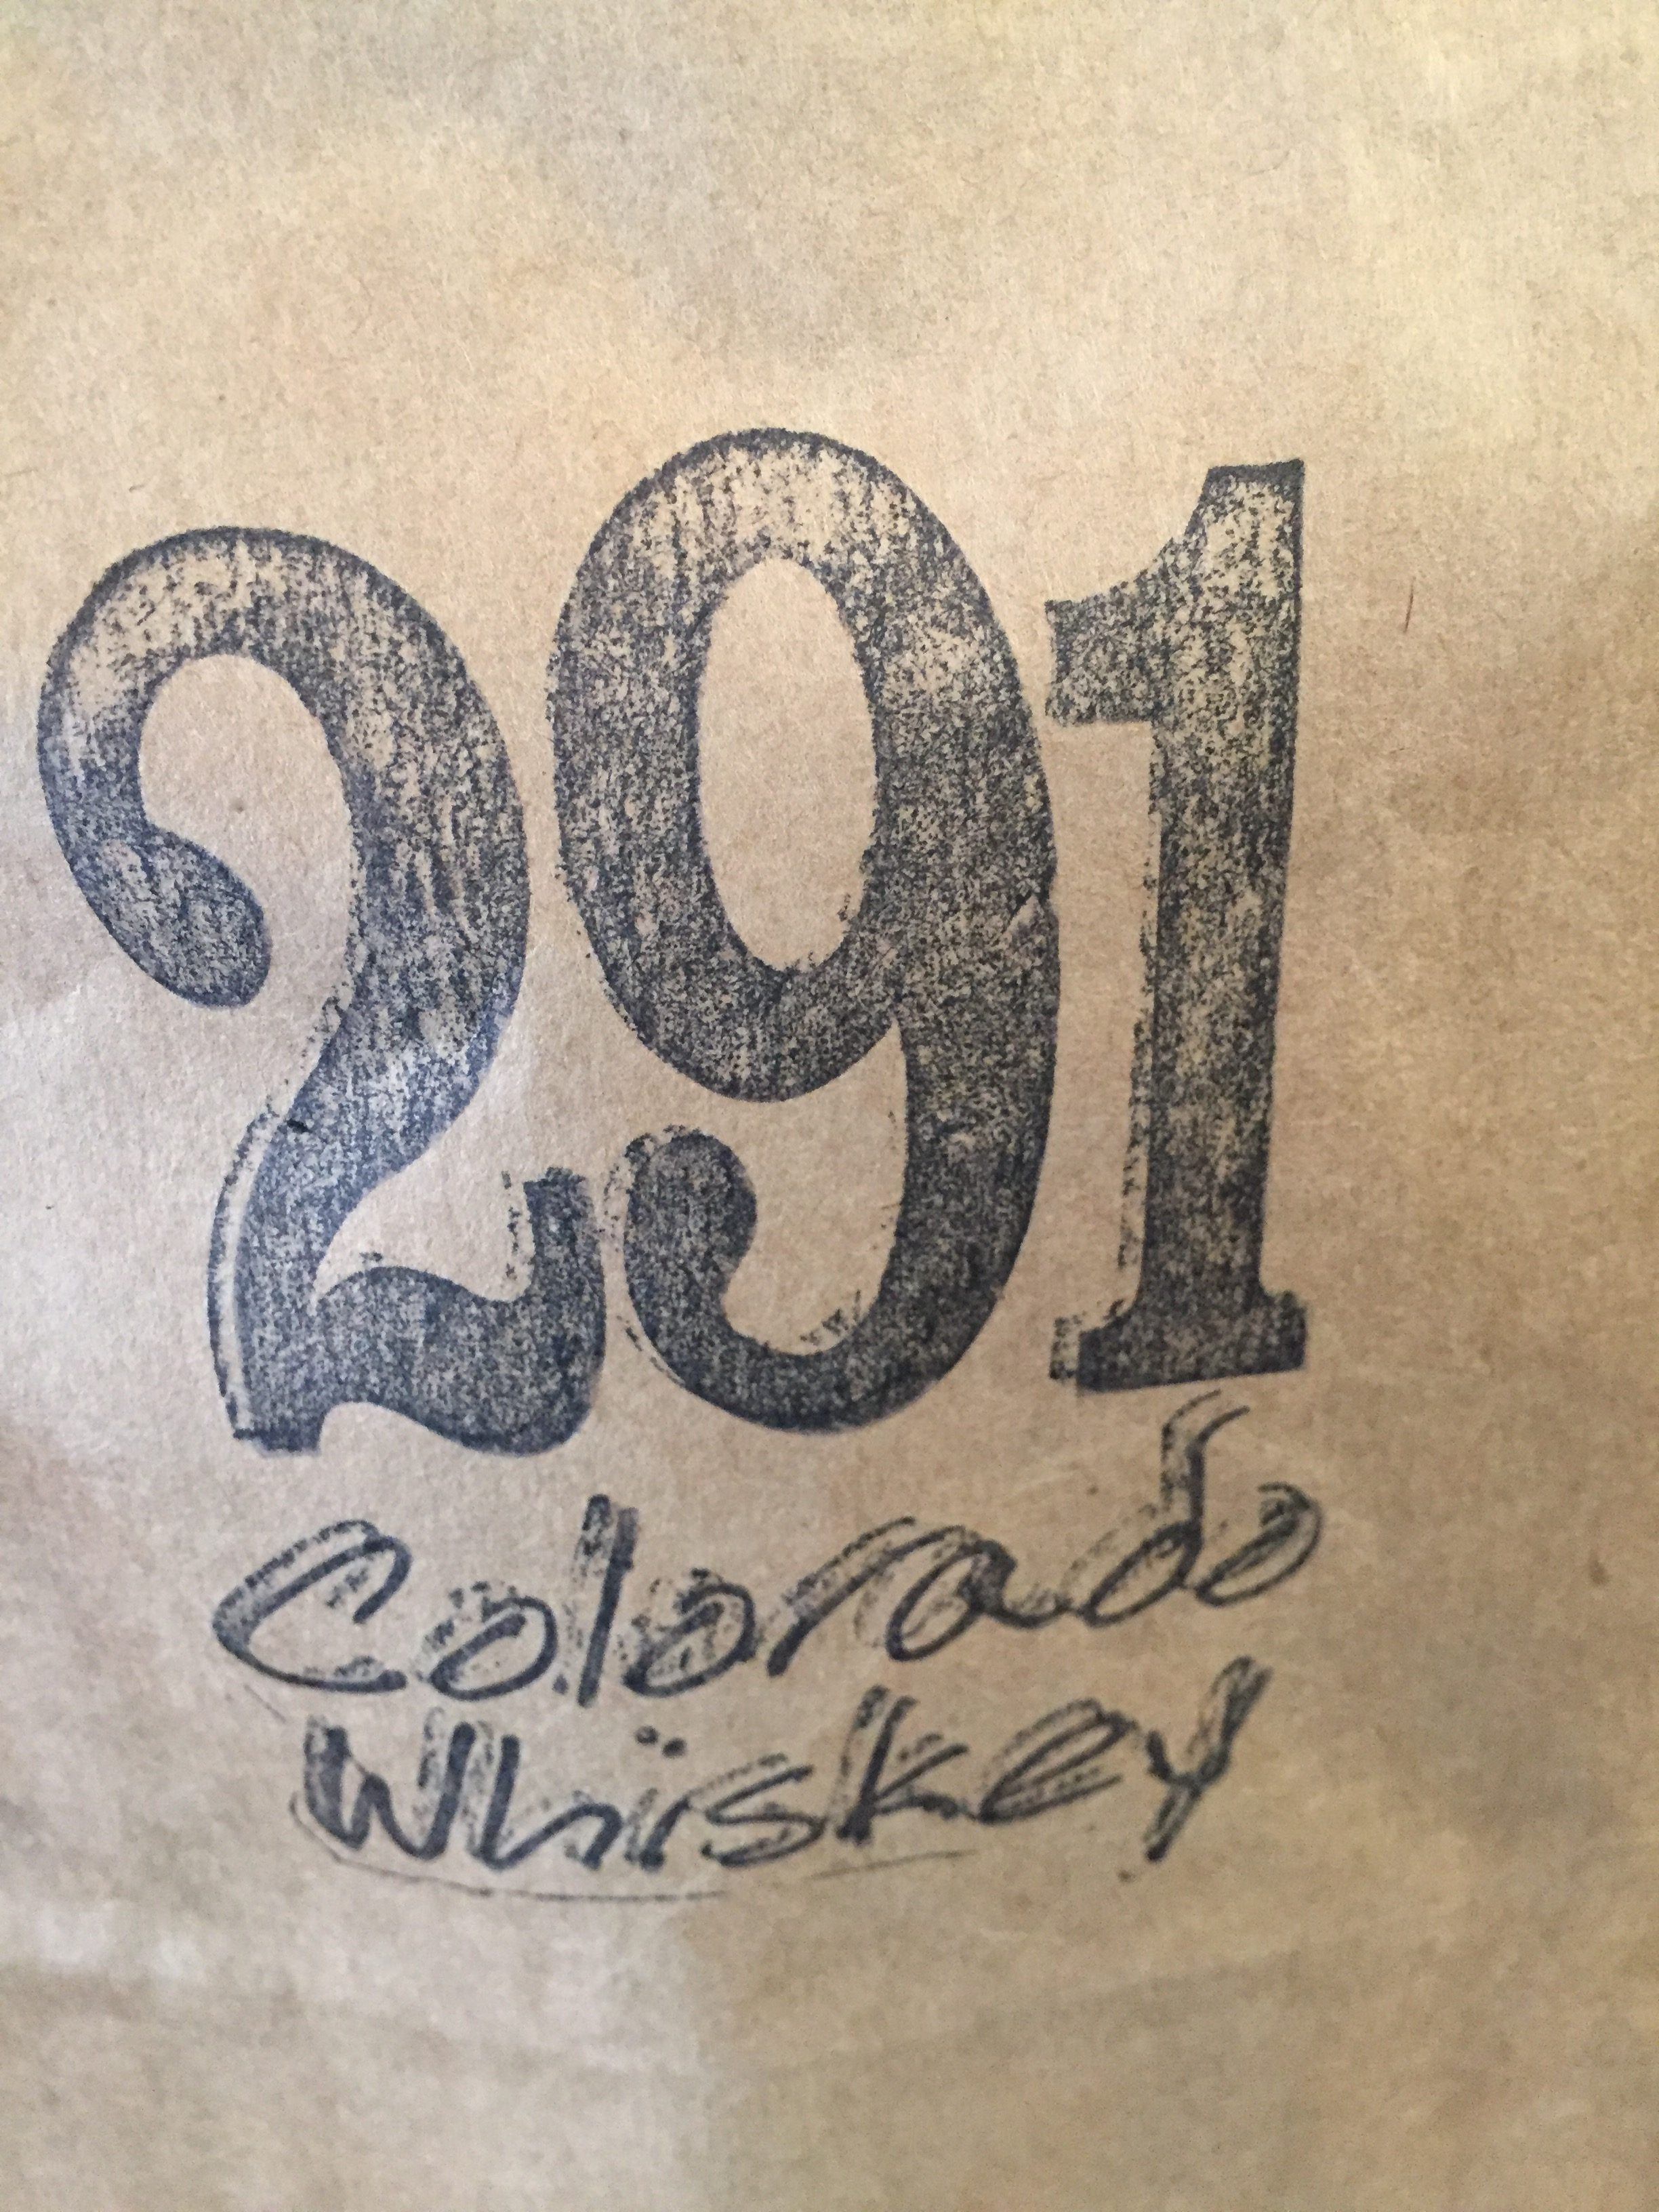 291 Whiskey Distillery - Colorado Springs